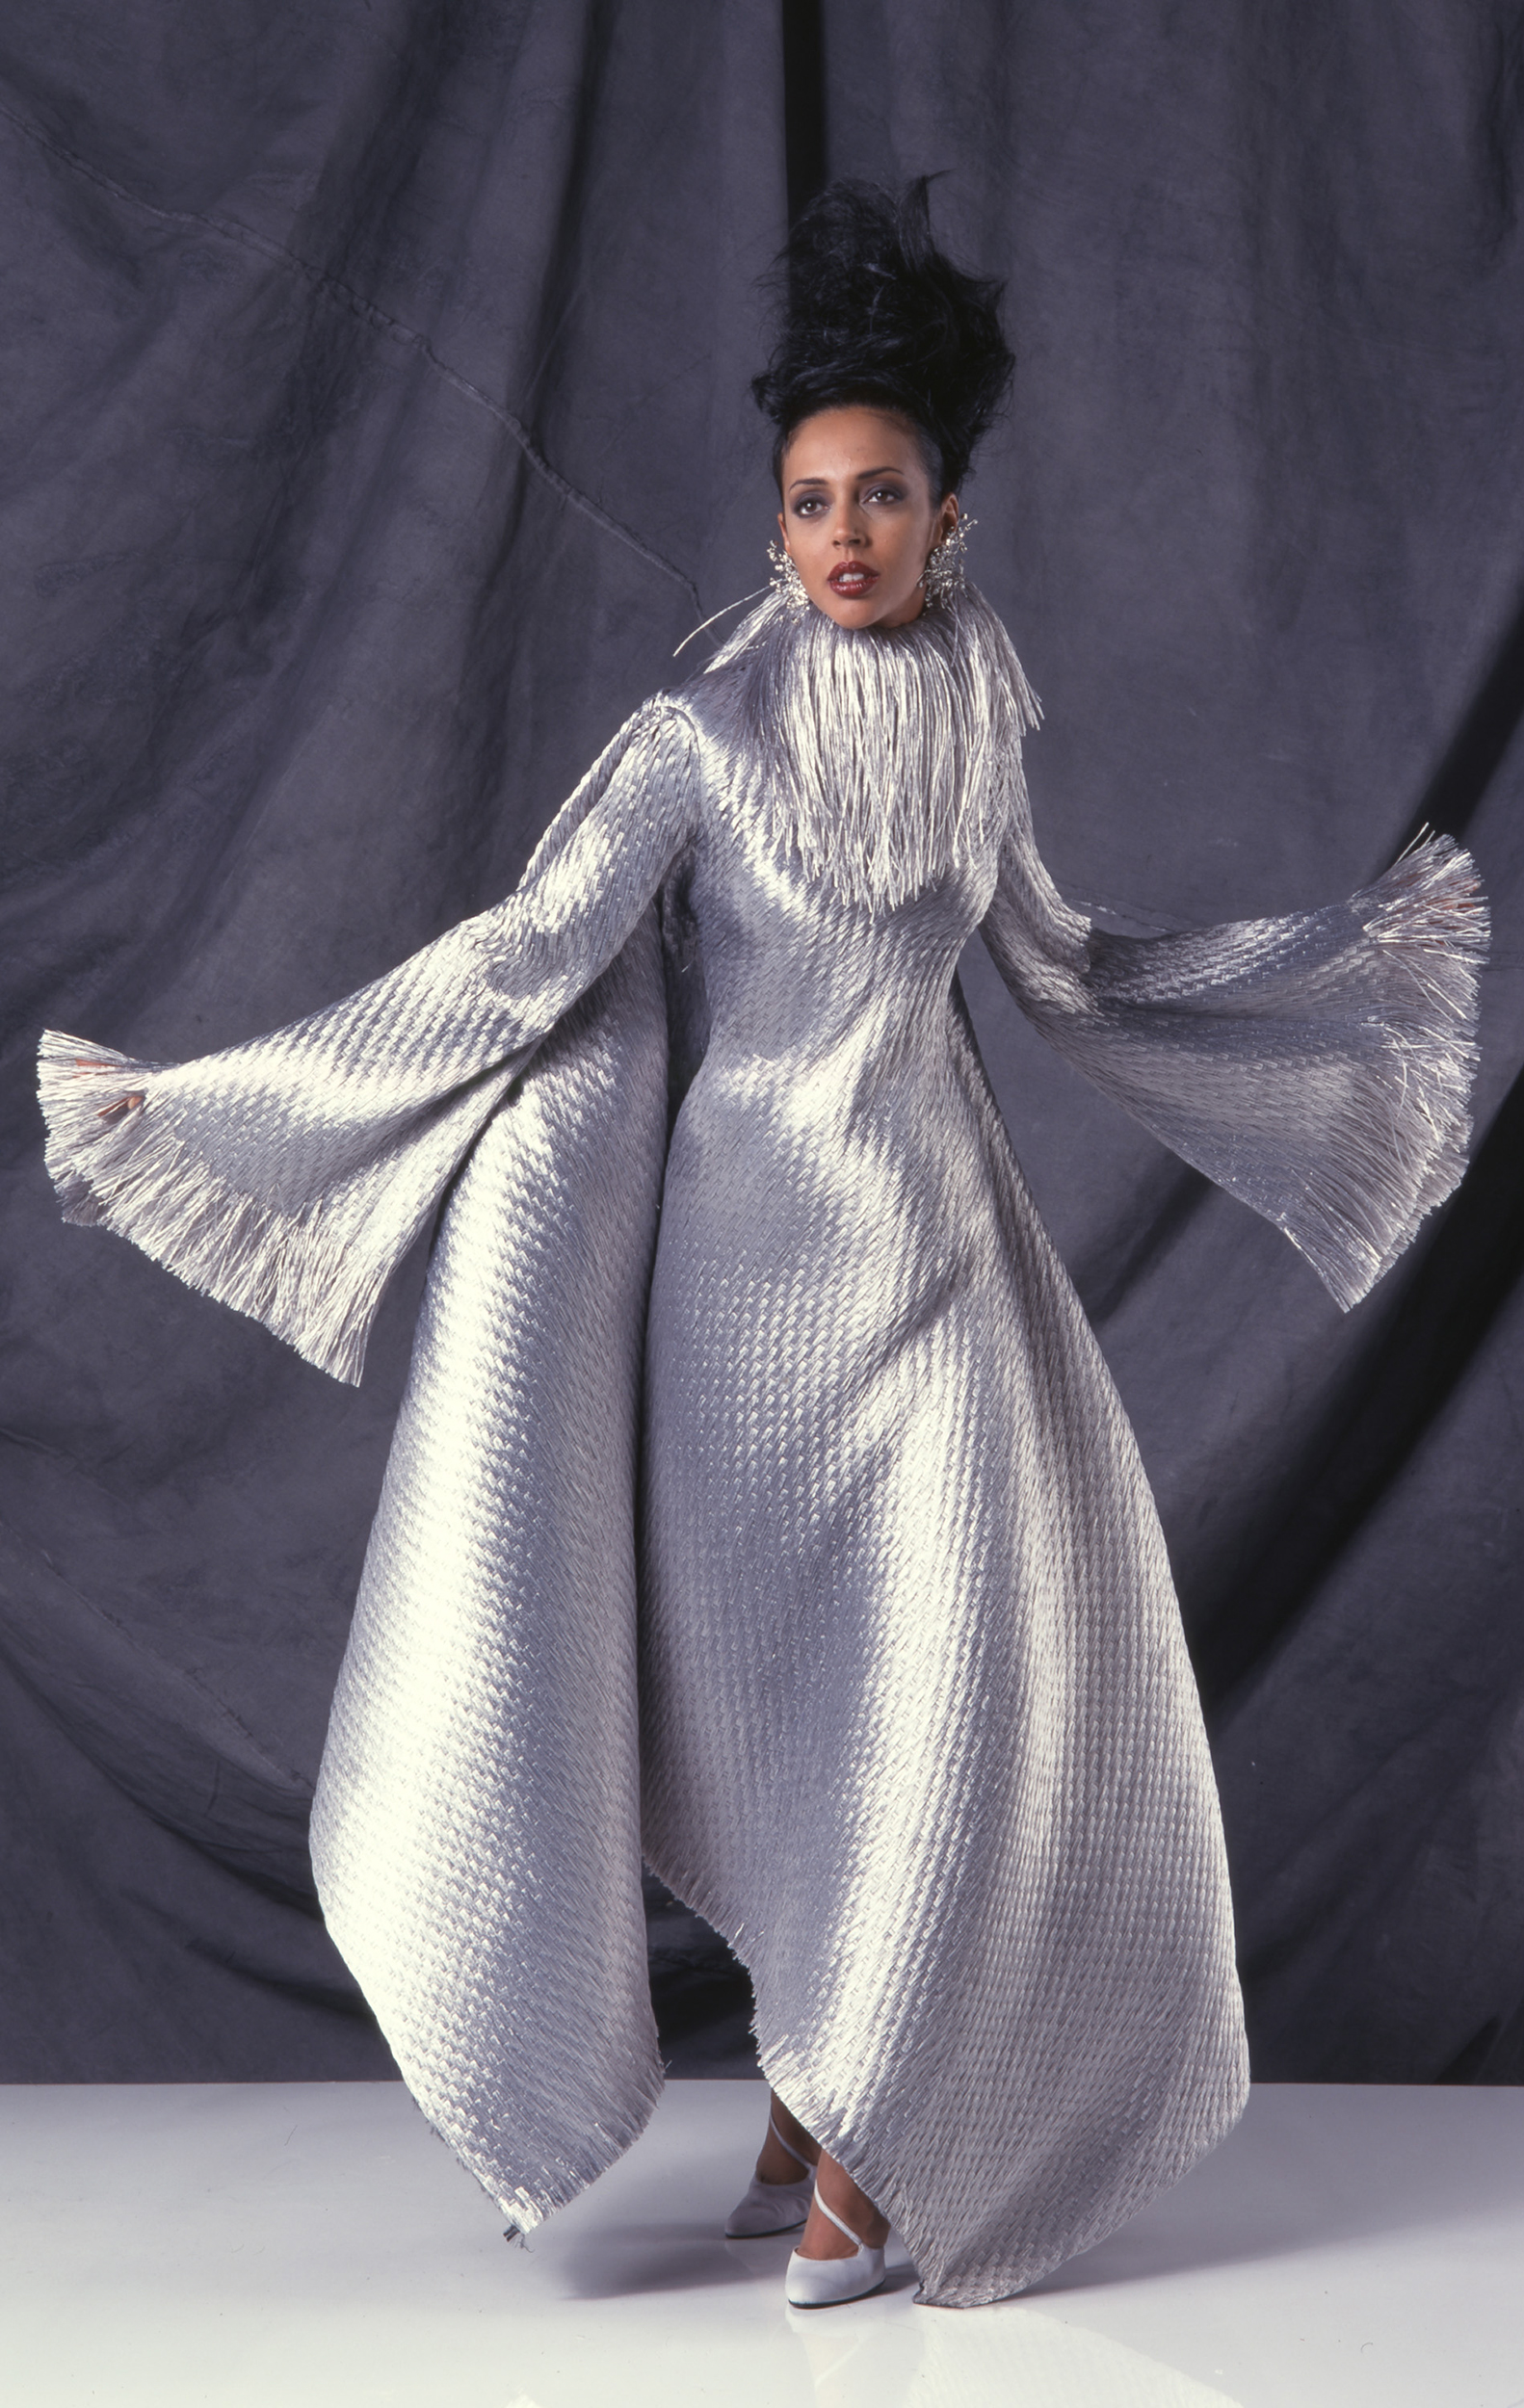 Inspiring Beauty: 50 Years of Ebony Fashion Fair | The George ...